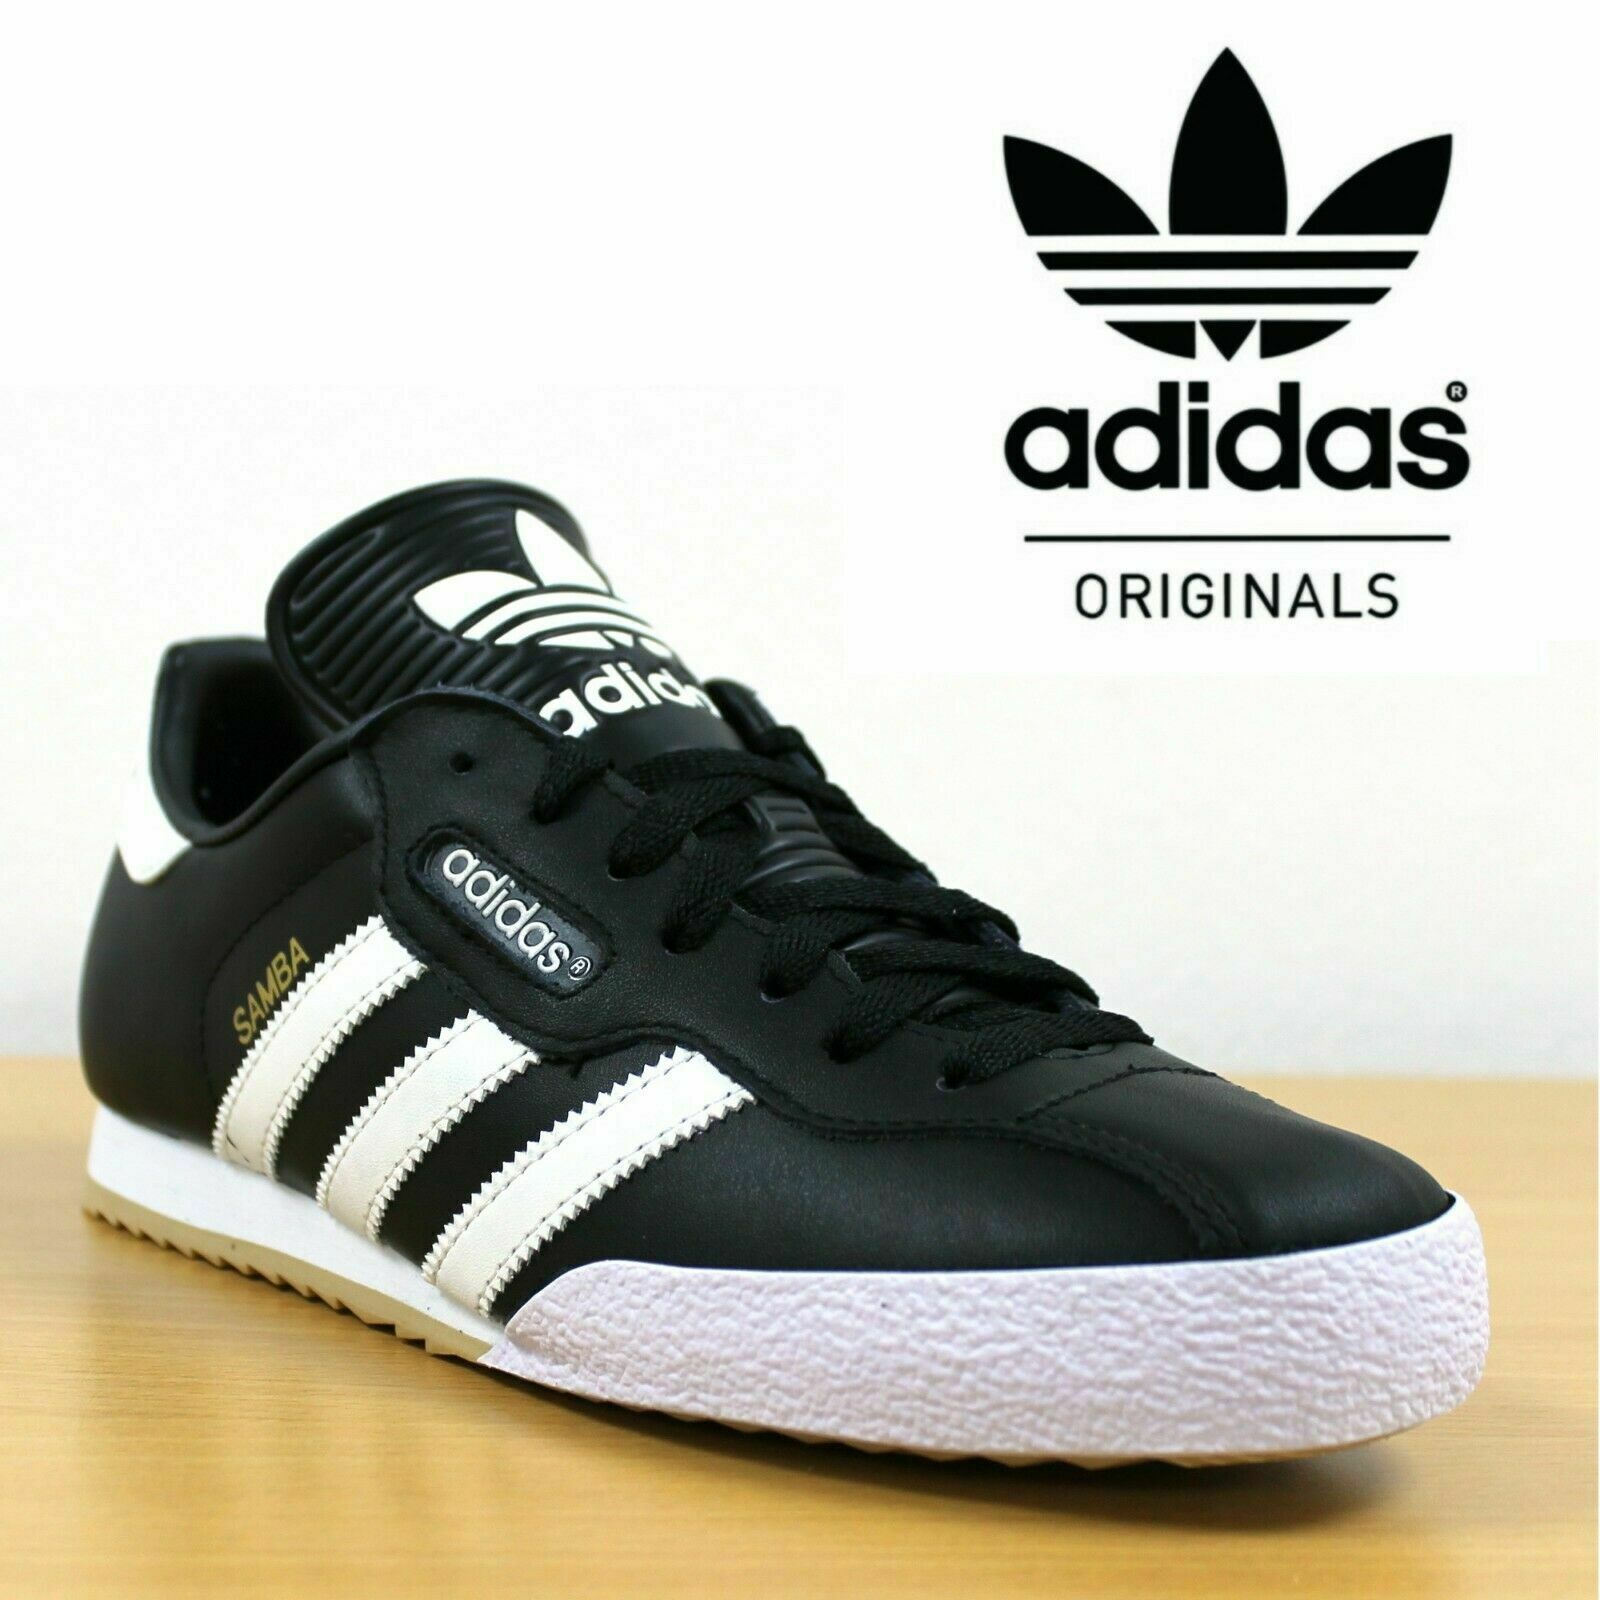 meet a2471 576c7 ADIDAS ORIGINAL SAMBA LEATHER TRAINERS TRAINERS TRAINERS - 24 hr TRACKED  DELIVERY beba08